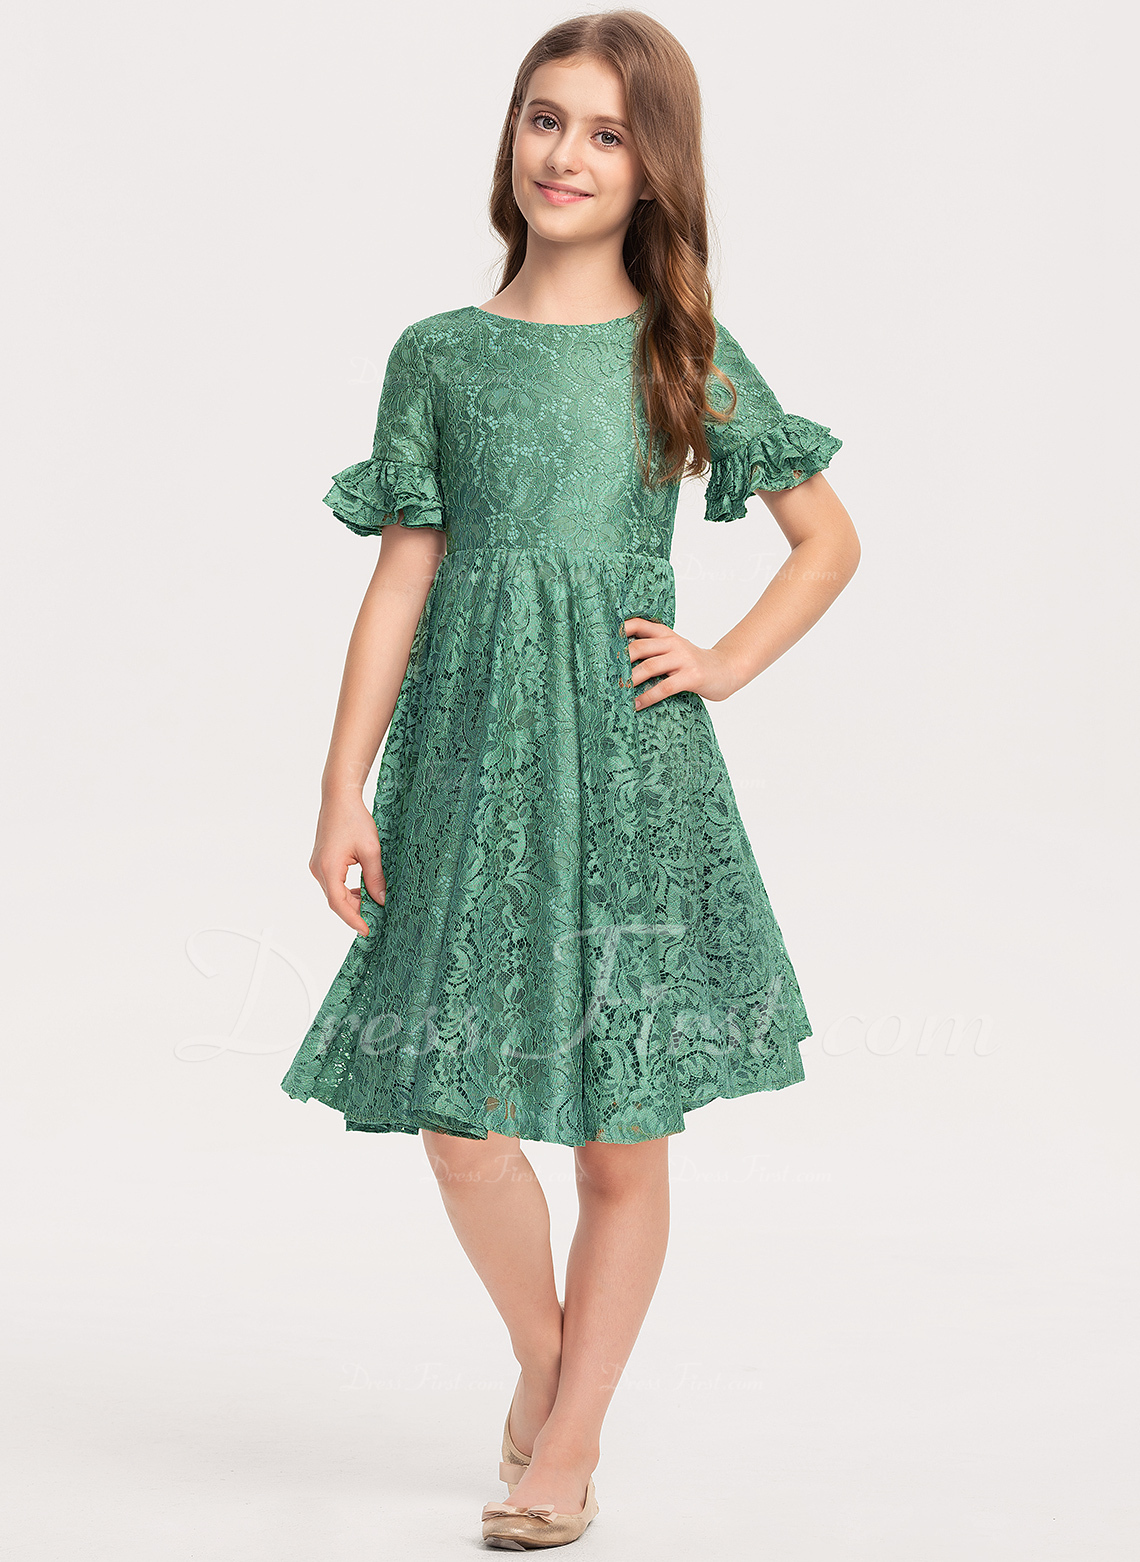 A-Line Scoop Neck Knee-Length Lace Junior Bridesmaid Dress With Cascading Ruffles